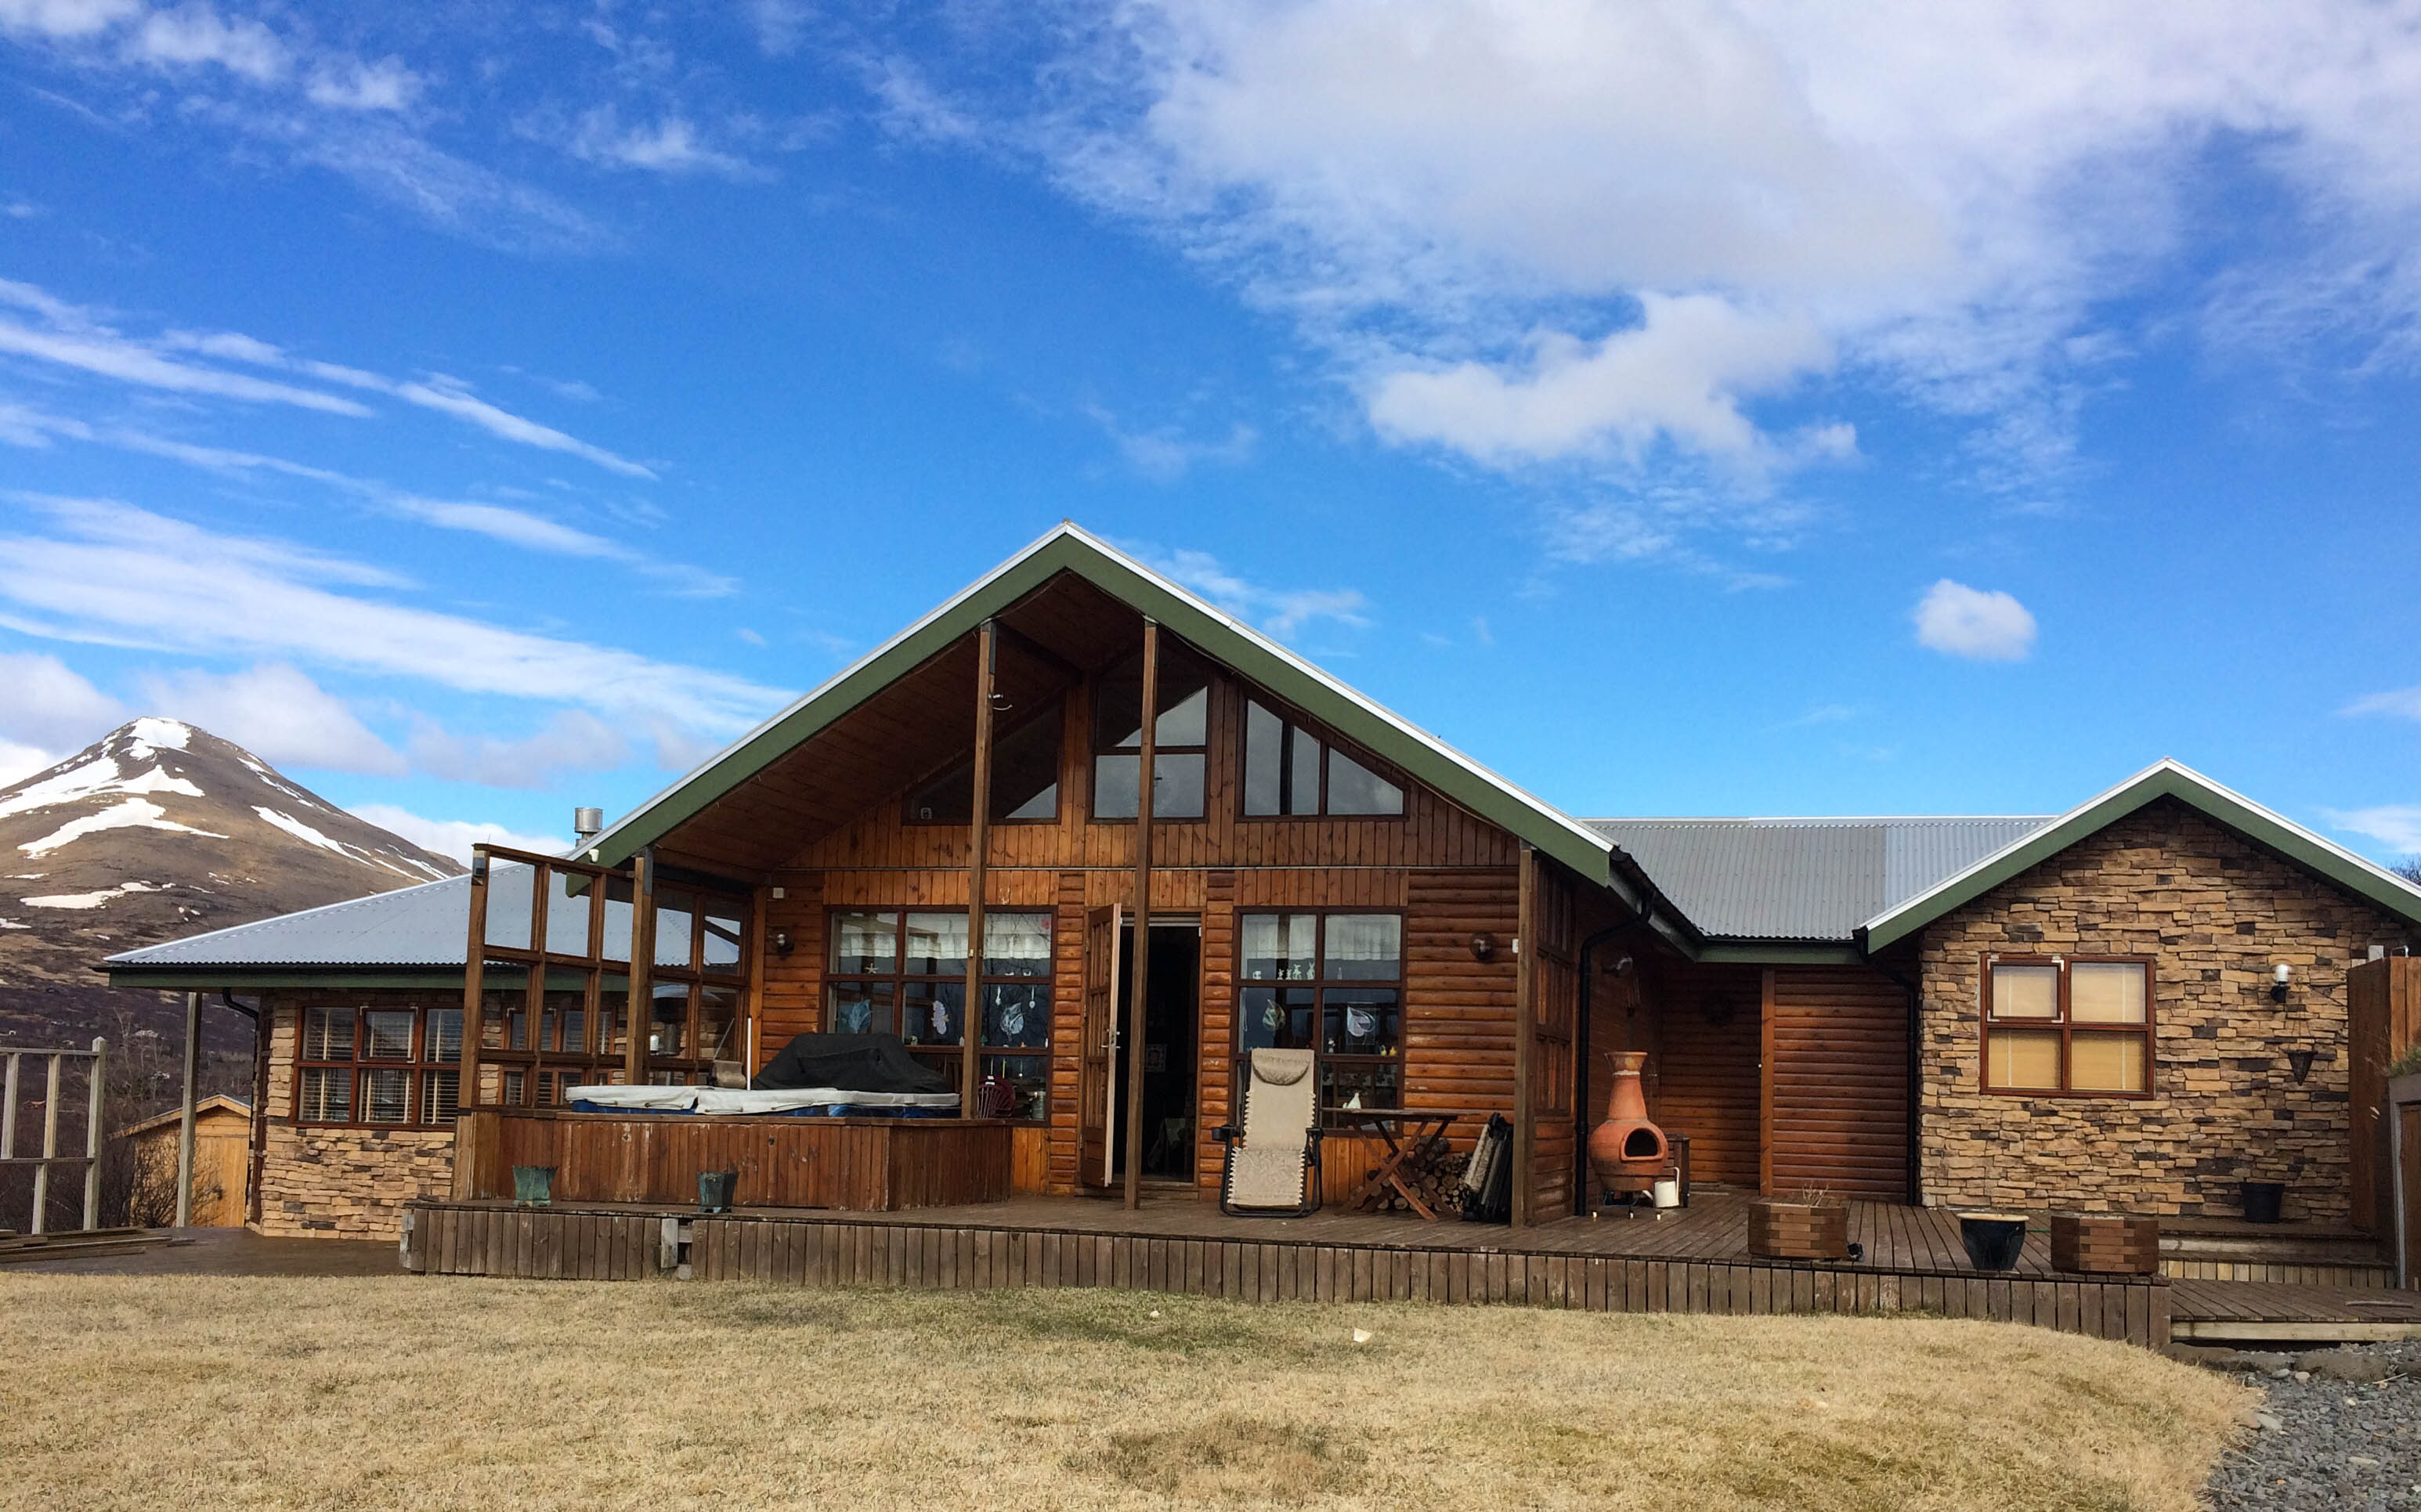 Iceland Culture: The Summerhouse